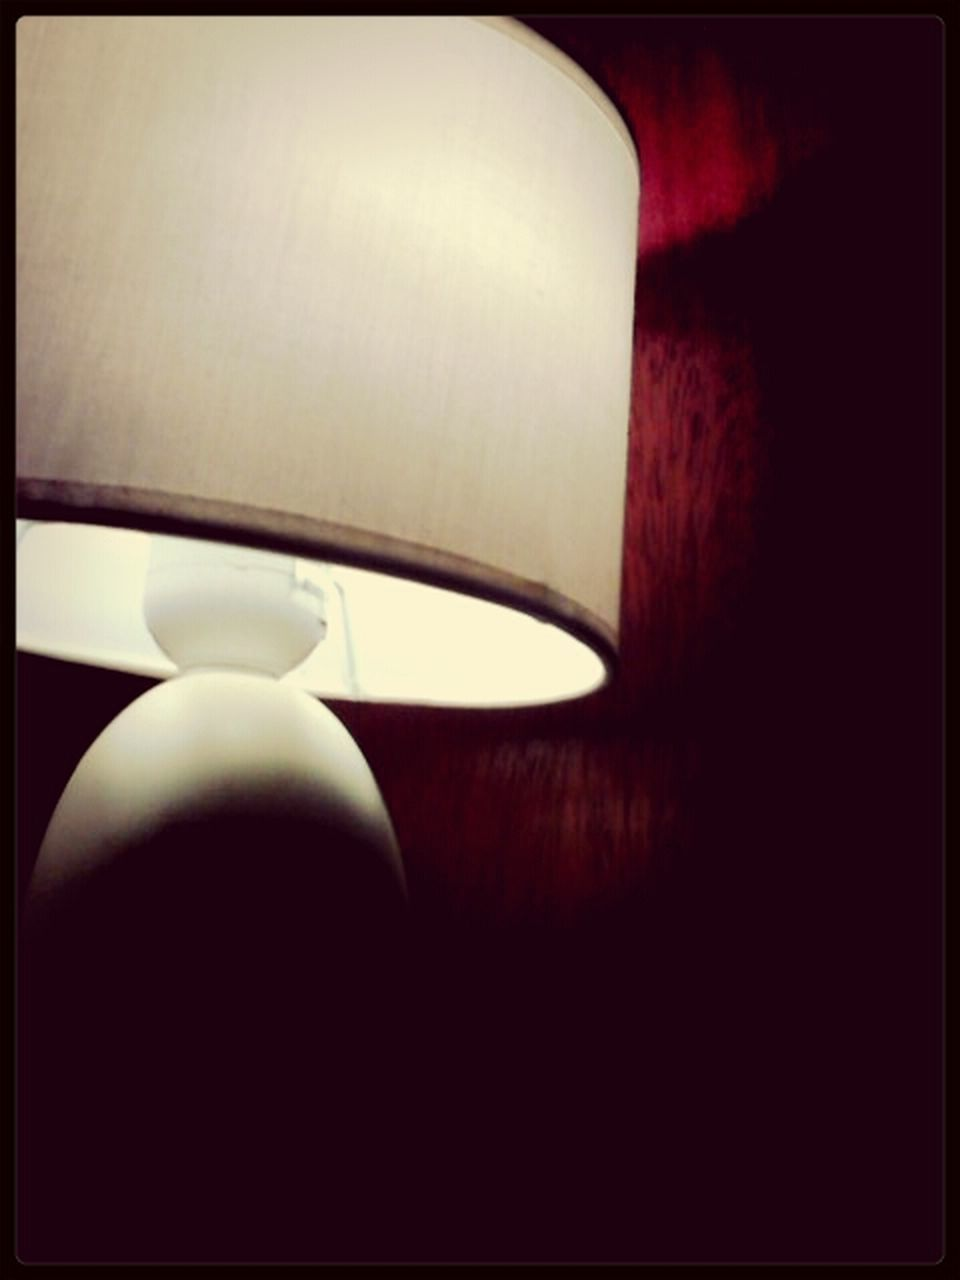 lamp shade, indoors, close-up, table, no people, illuminated, electricity, technology, day